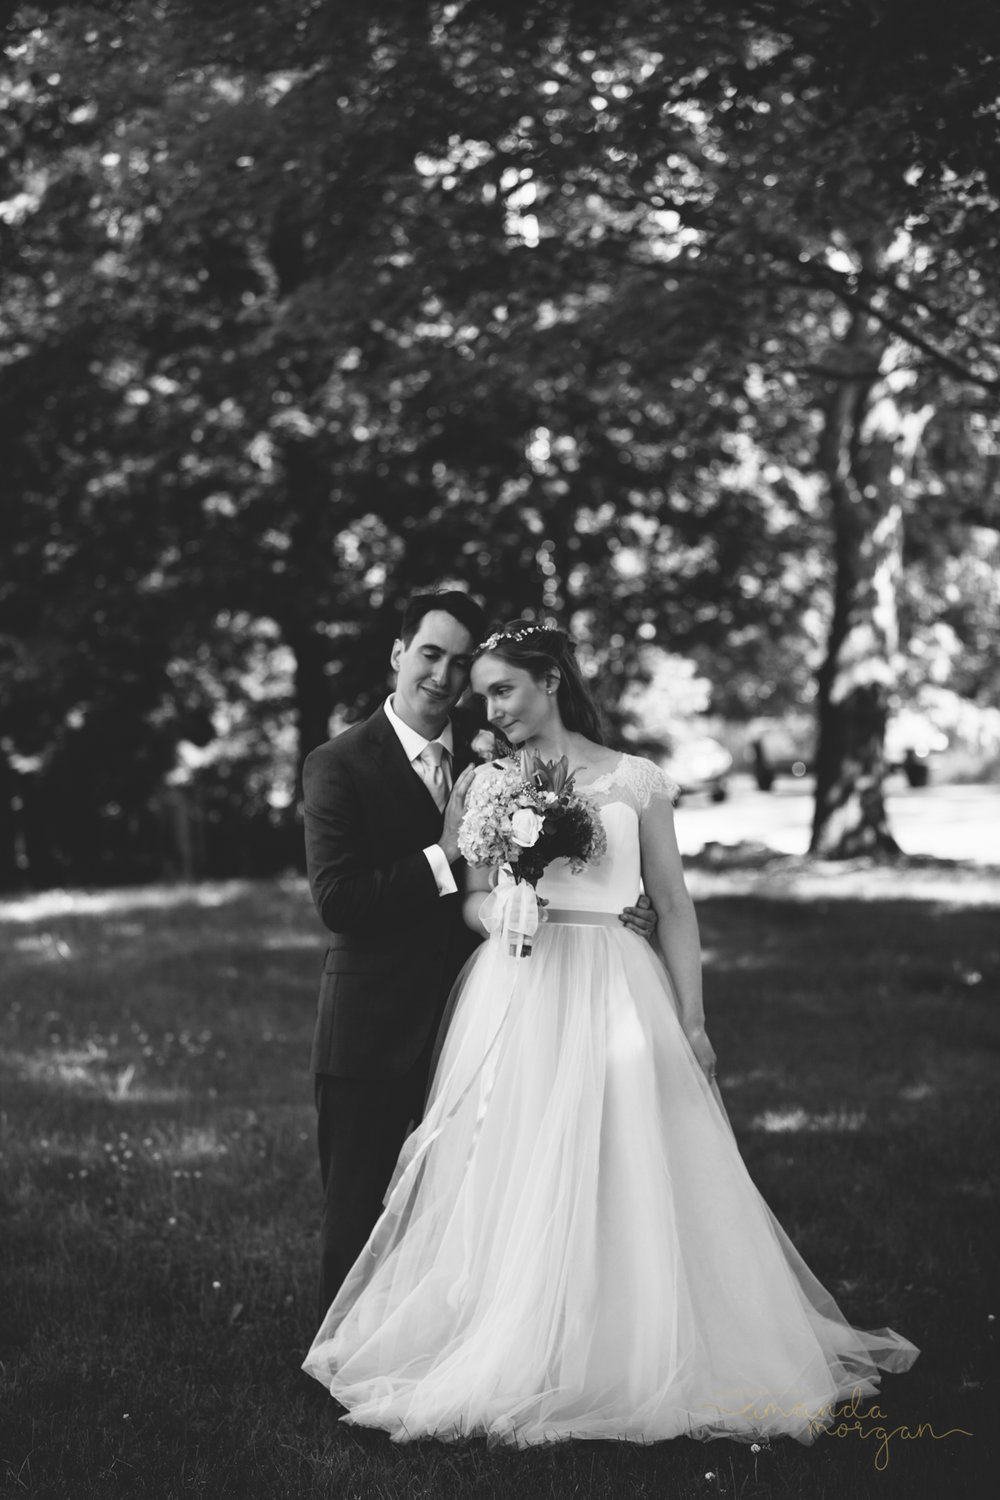 Glimmerstone-Mansion-Vermont-Wedding-Amanda-Morgan-38.jpg